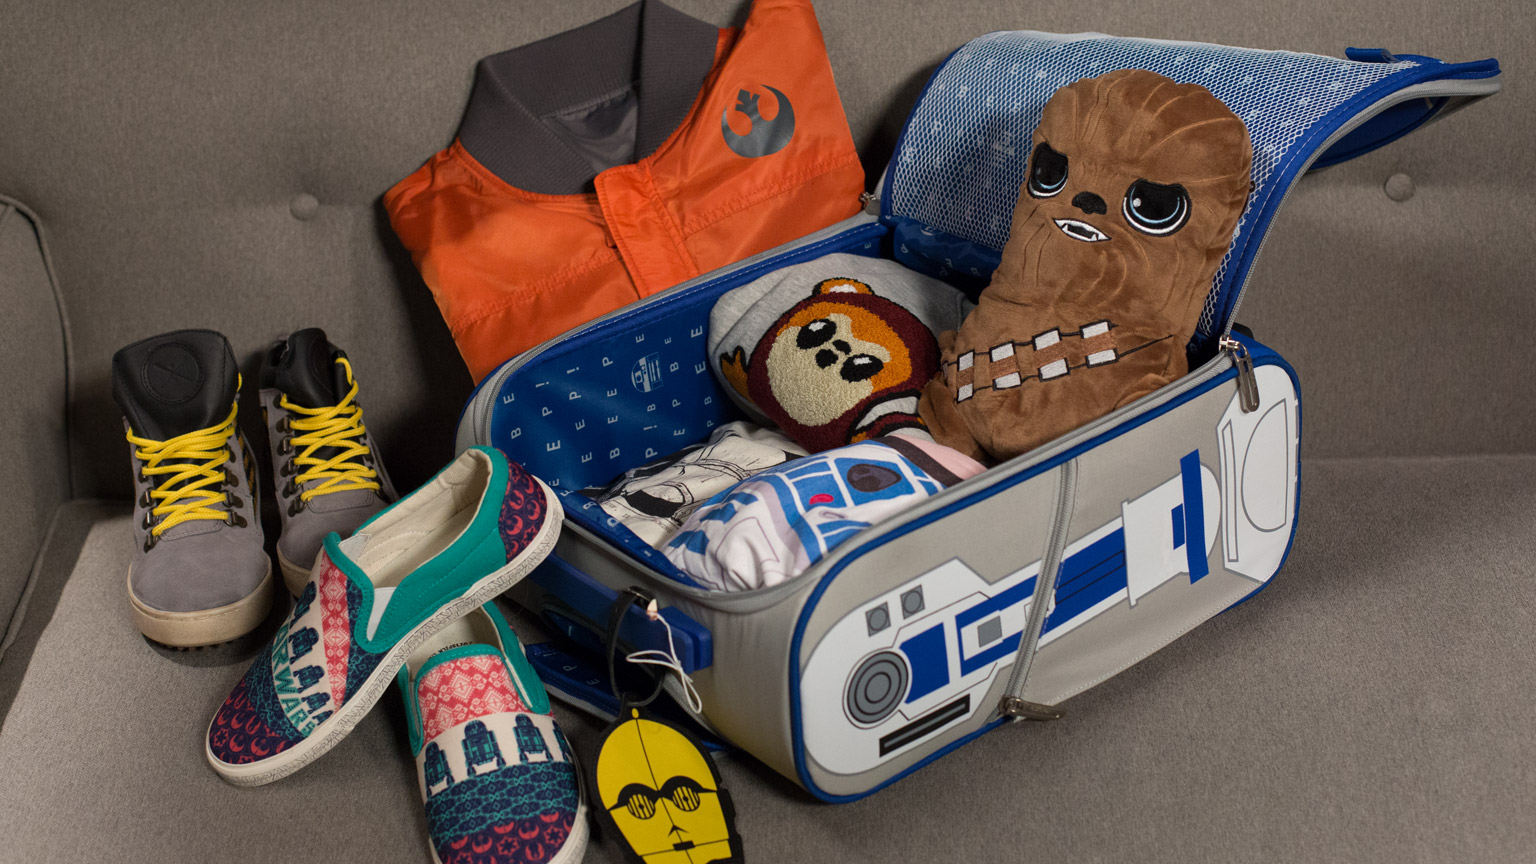 It's time to pack for Star Wars Celebration.